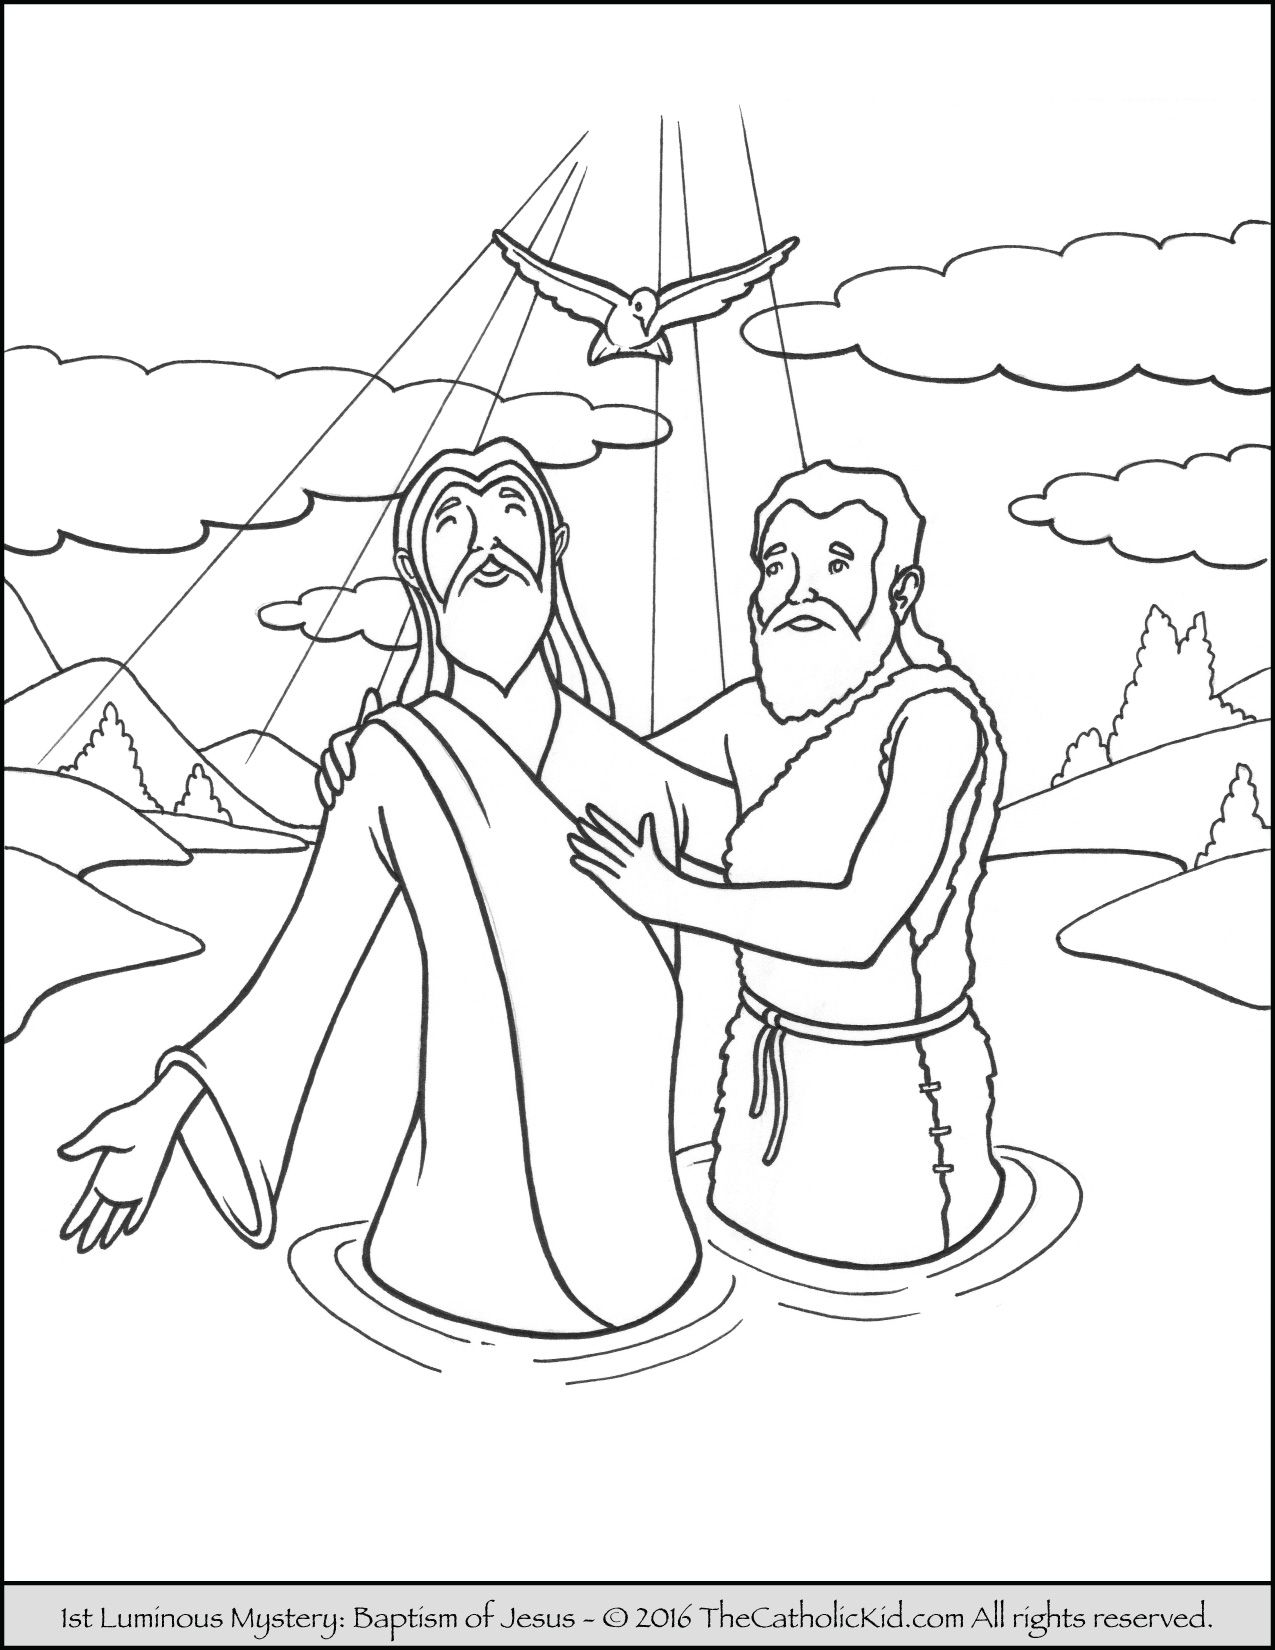 Coloring pages for jordans - The 1st Luminous Mysteries Rosary Coloring Pages Baptism Of Jesus In The Jordan